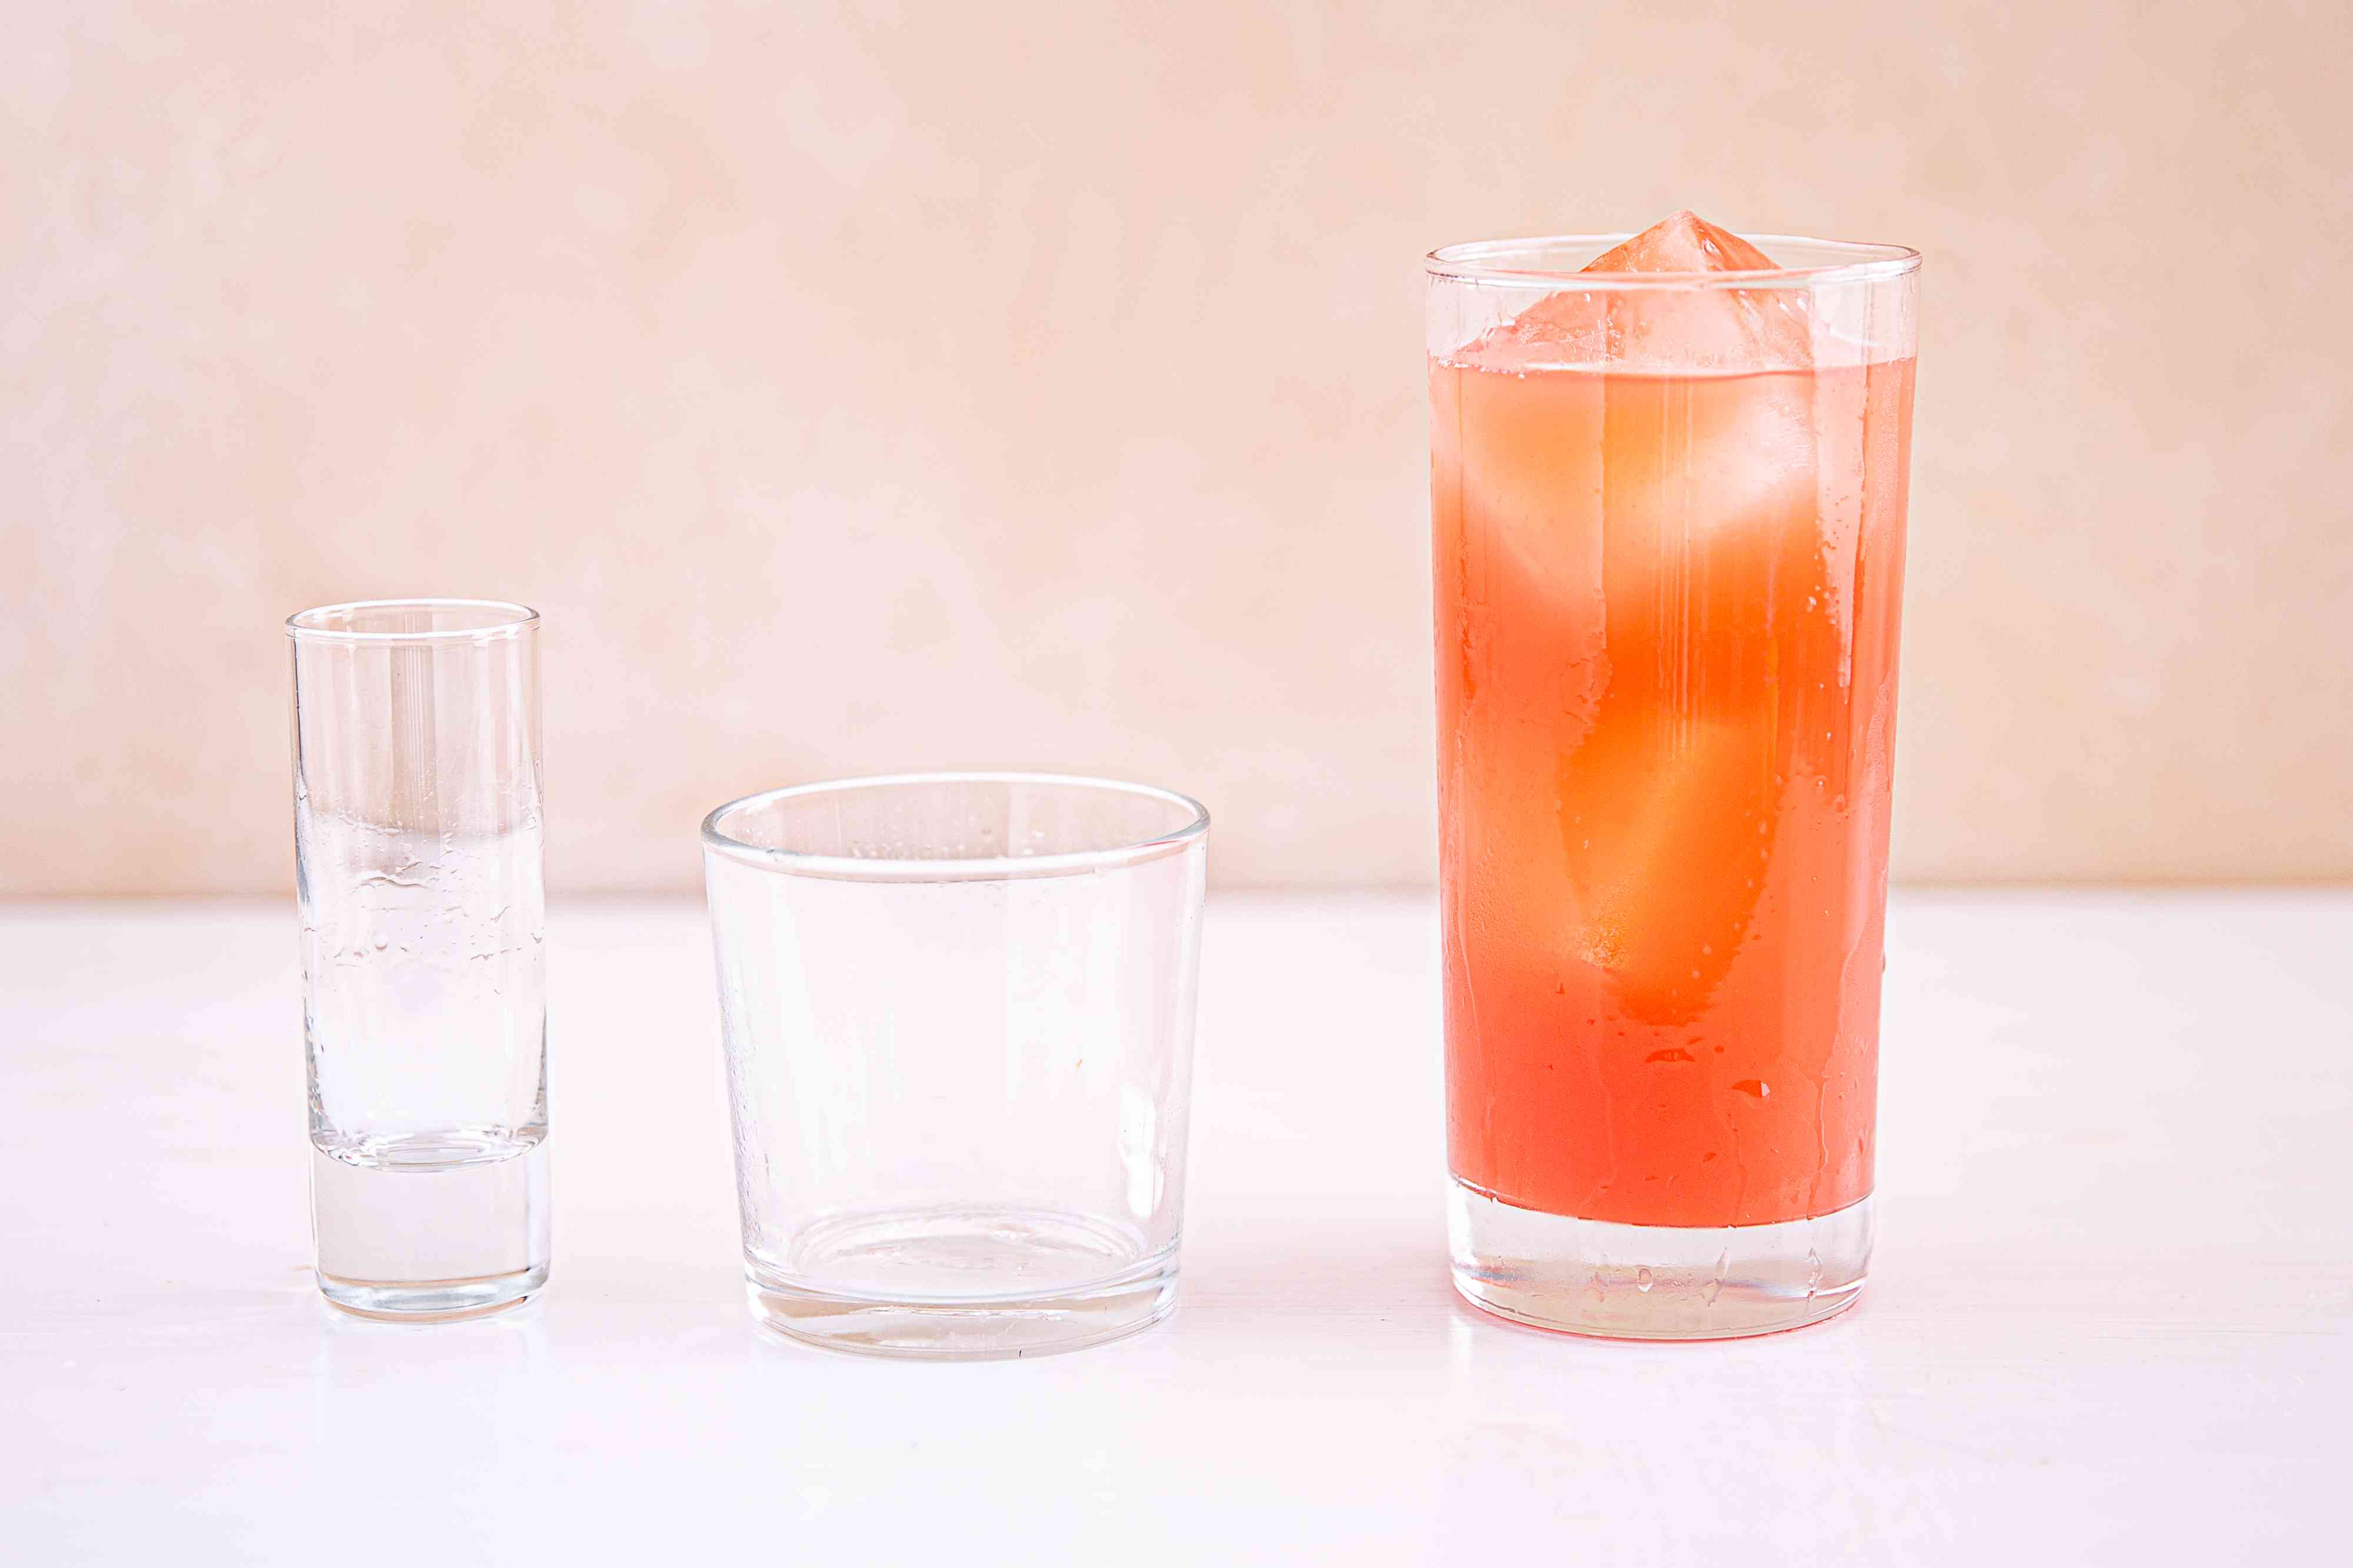 Grapefruit juice and vodka poured into a Collins glass